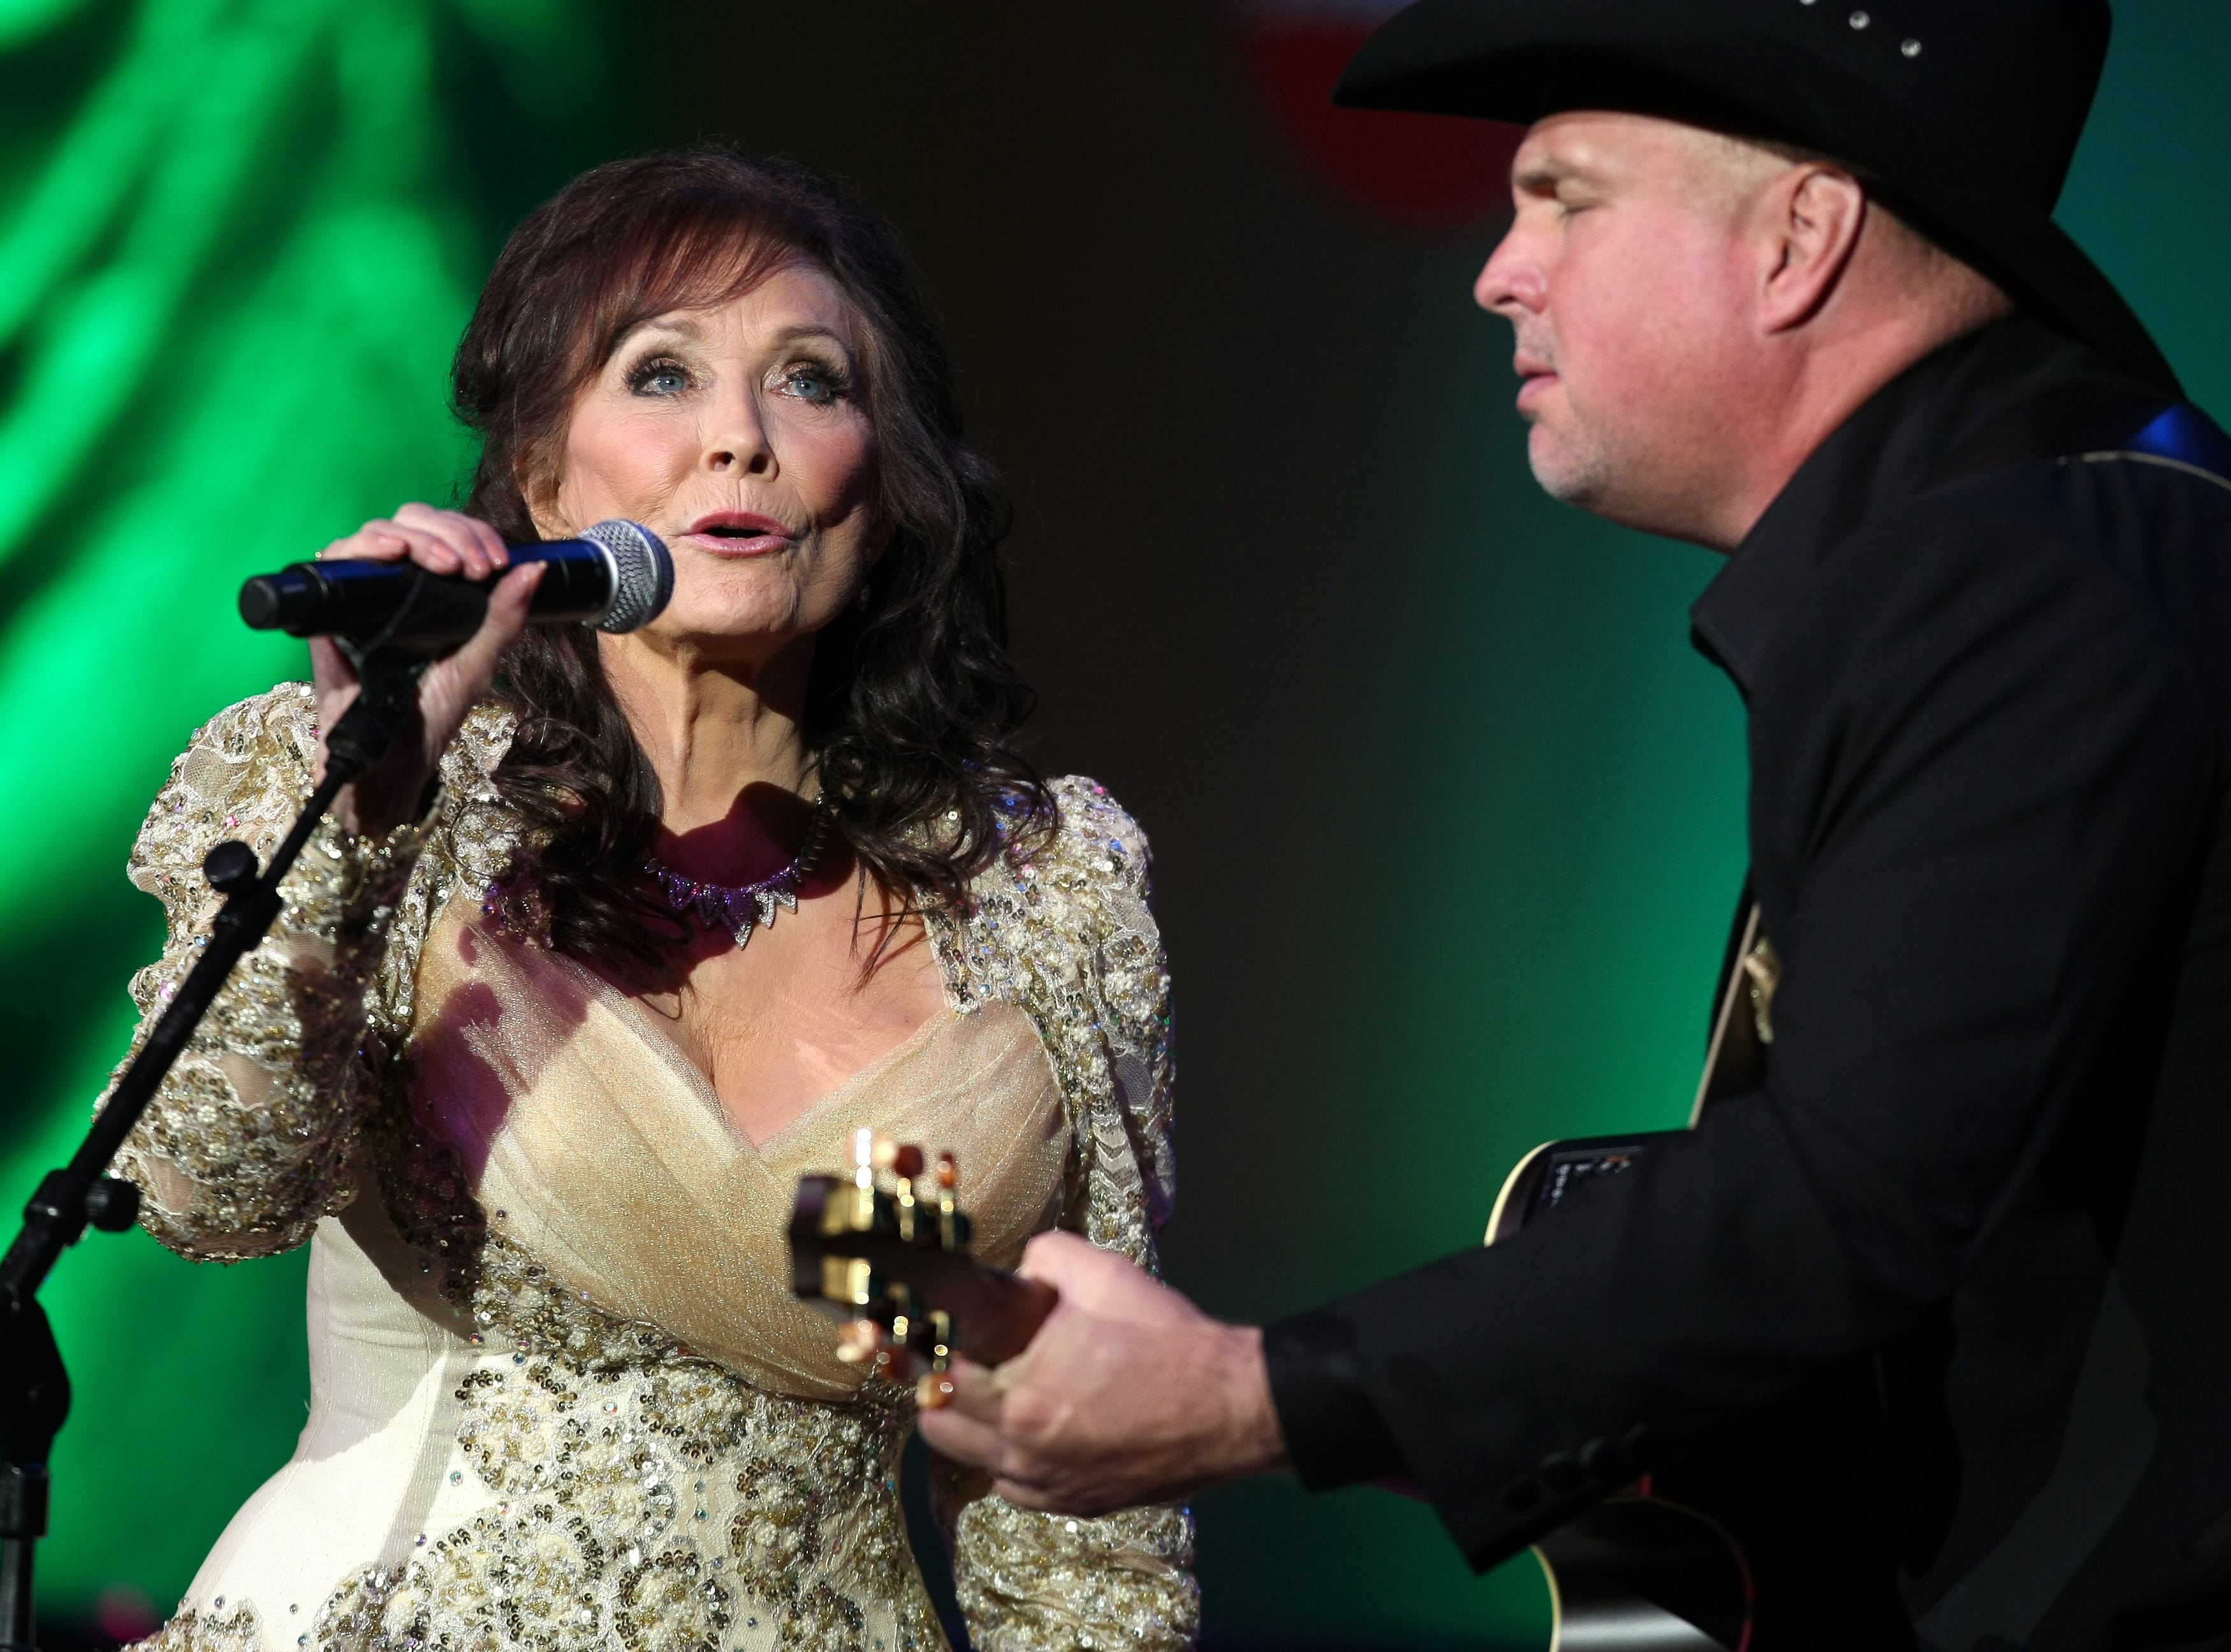 Loretta Lynn, left, and Garth Brooks perform at the GRAMMY Salute To Country Music¨ honoring Lynn at the Ryman Auditorium Oct. 12, 2010 in Nashville. Lynn was presented the Recording Academy President's Merit Award in honor of her dynamic career and contributions to country music.